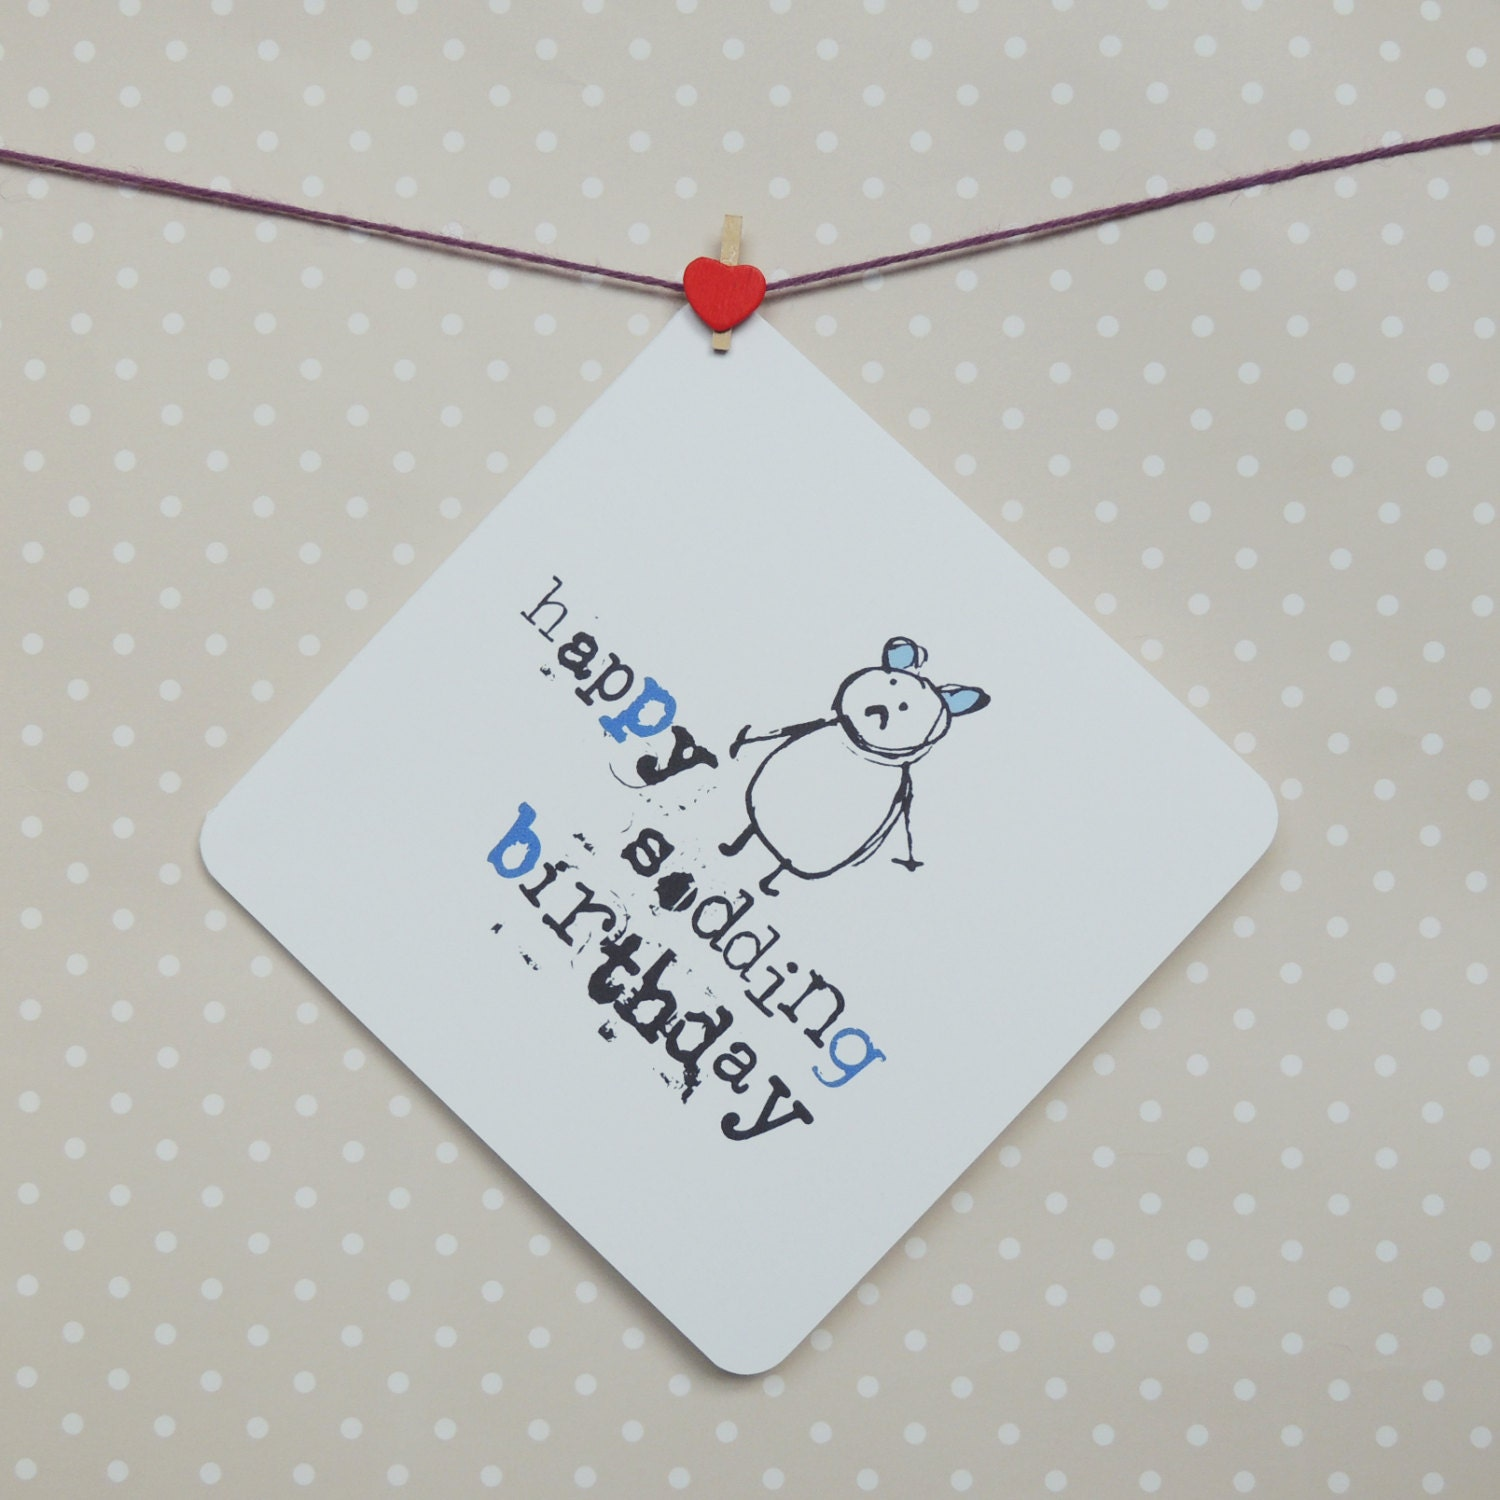 ... similar to Happy sodding birthday funny rude greeting card on Etsy